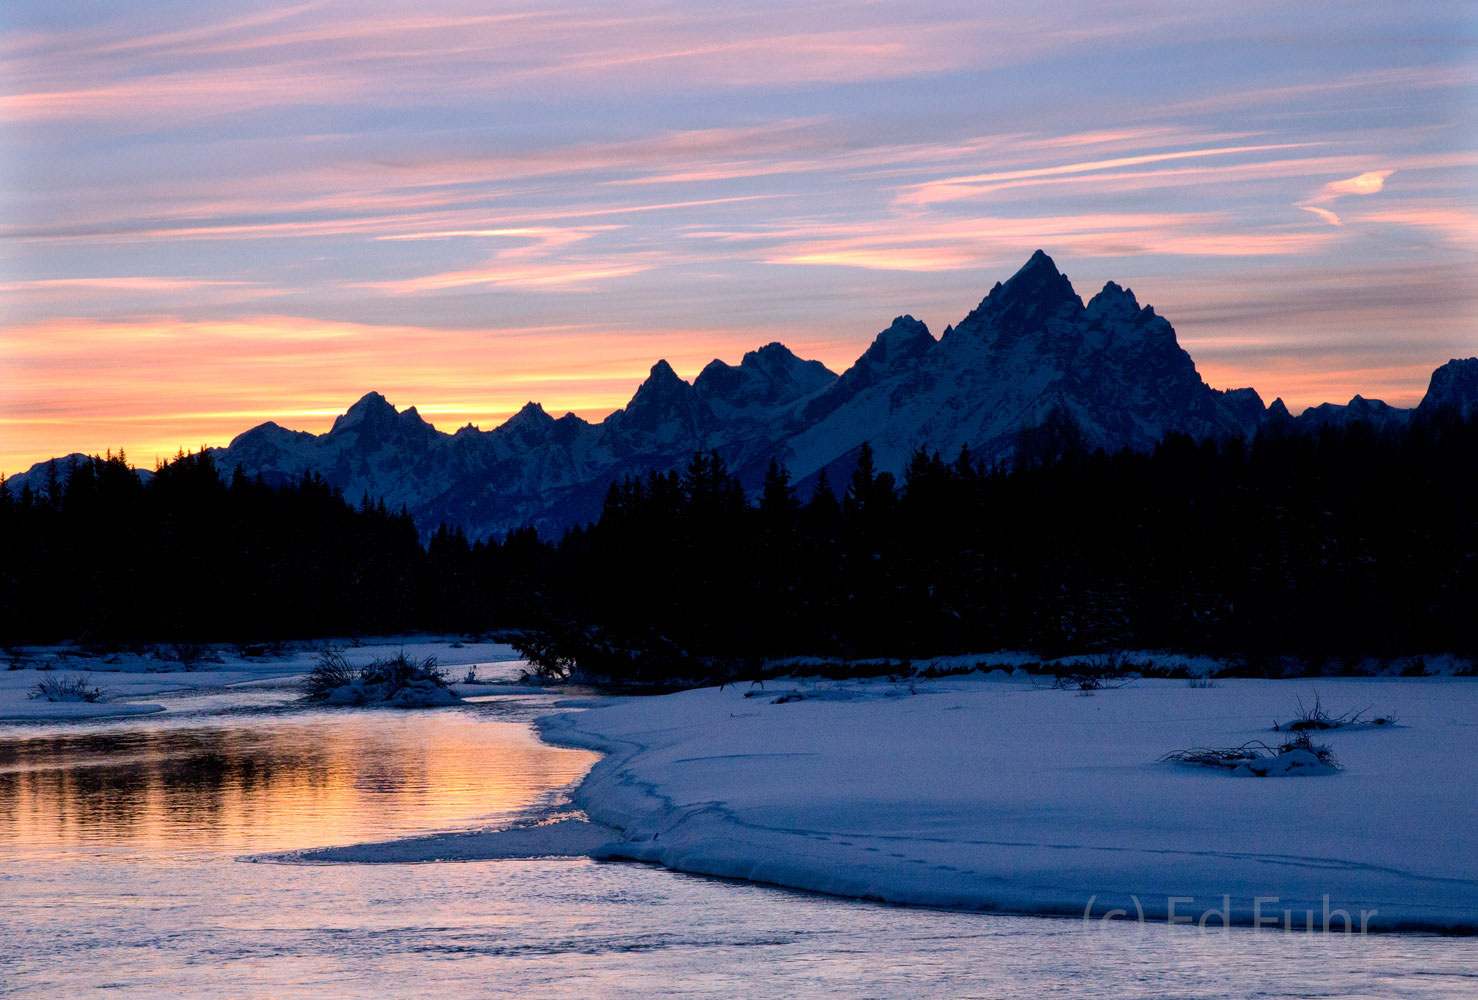 The last light of dusk reflects on the still open waters of the Snake River near Buffalo Fork.